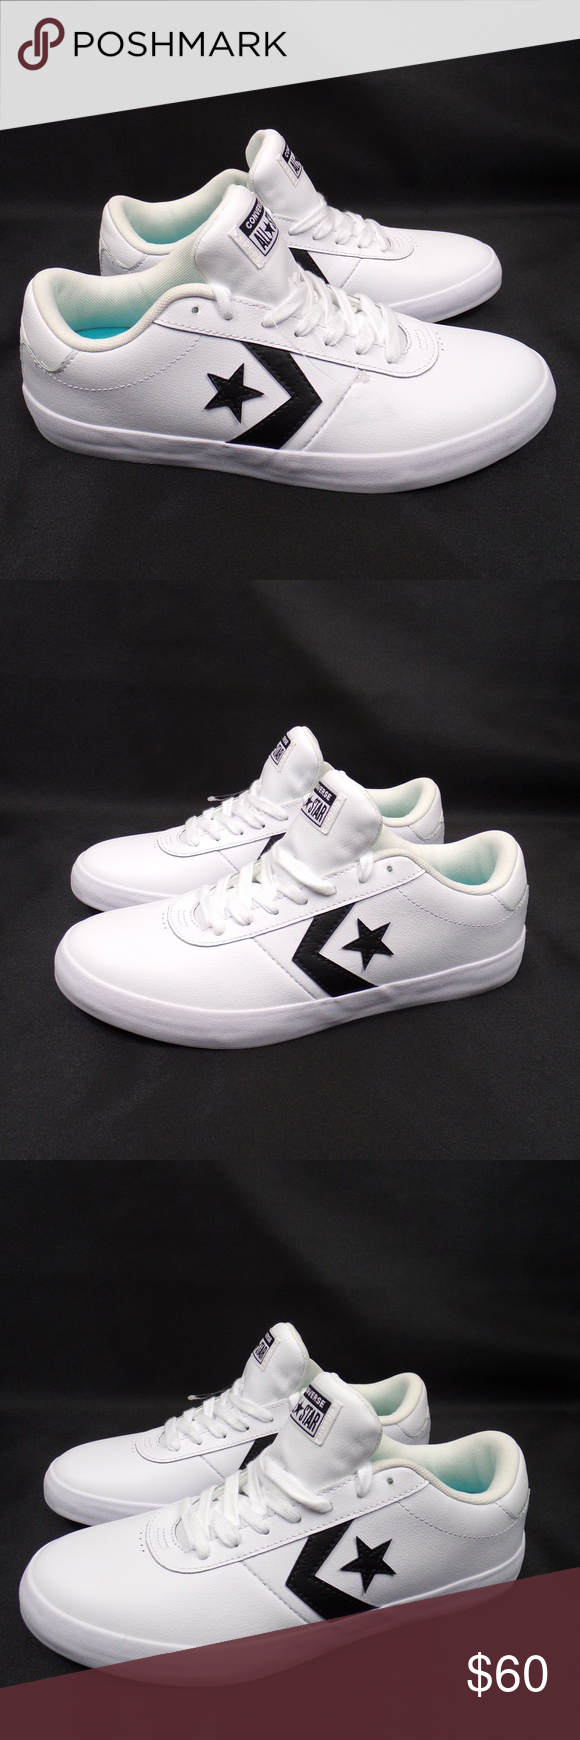 converse point star leather